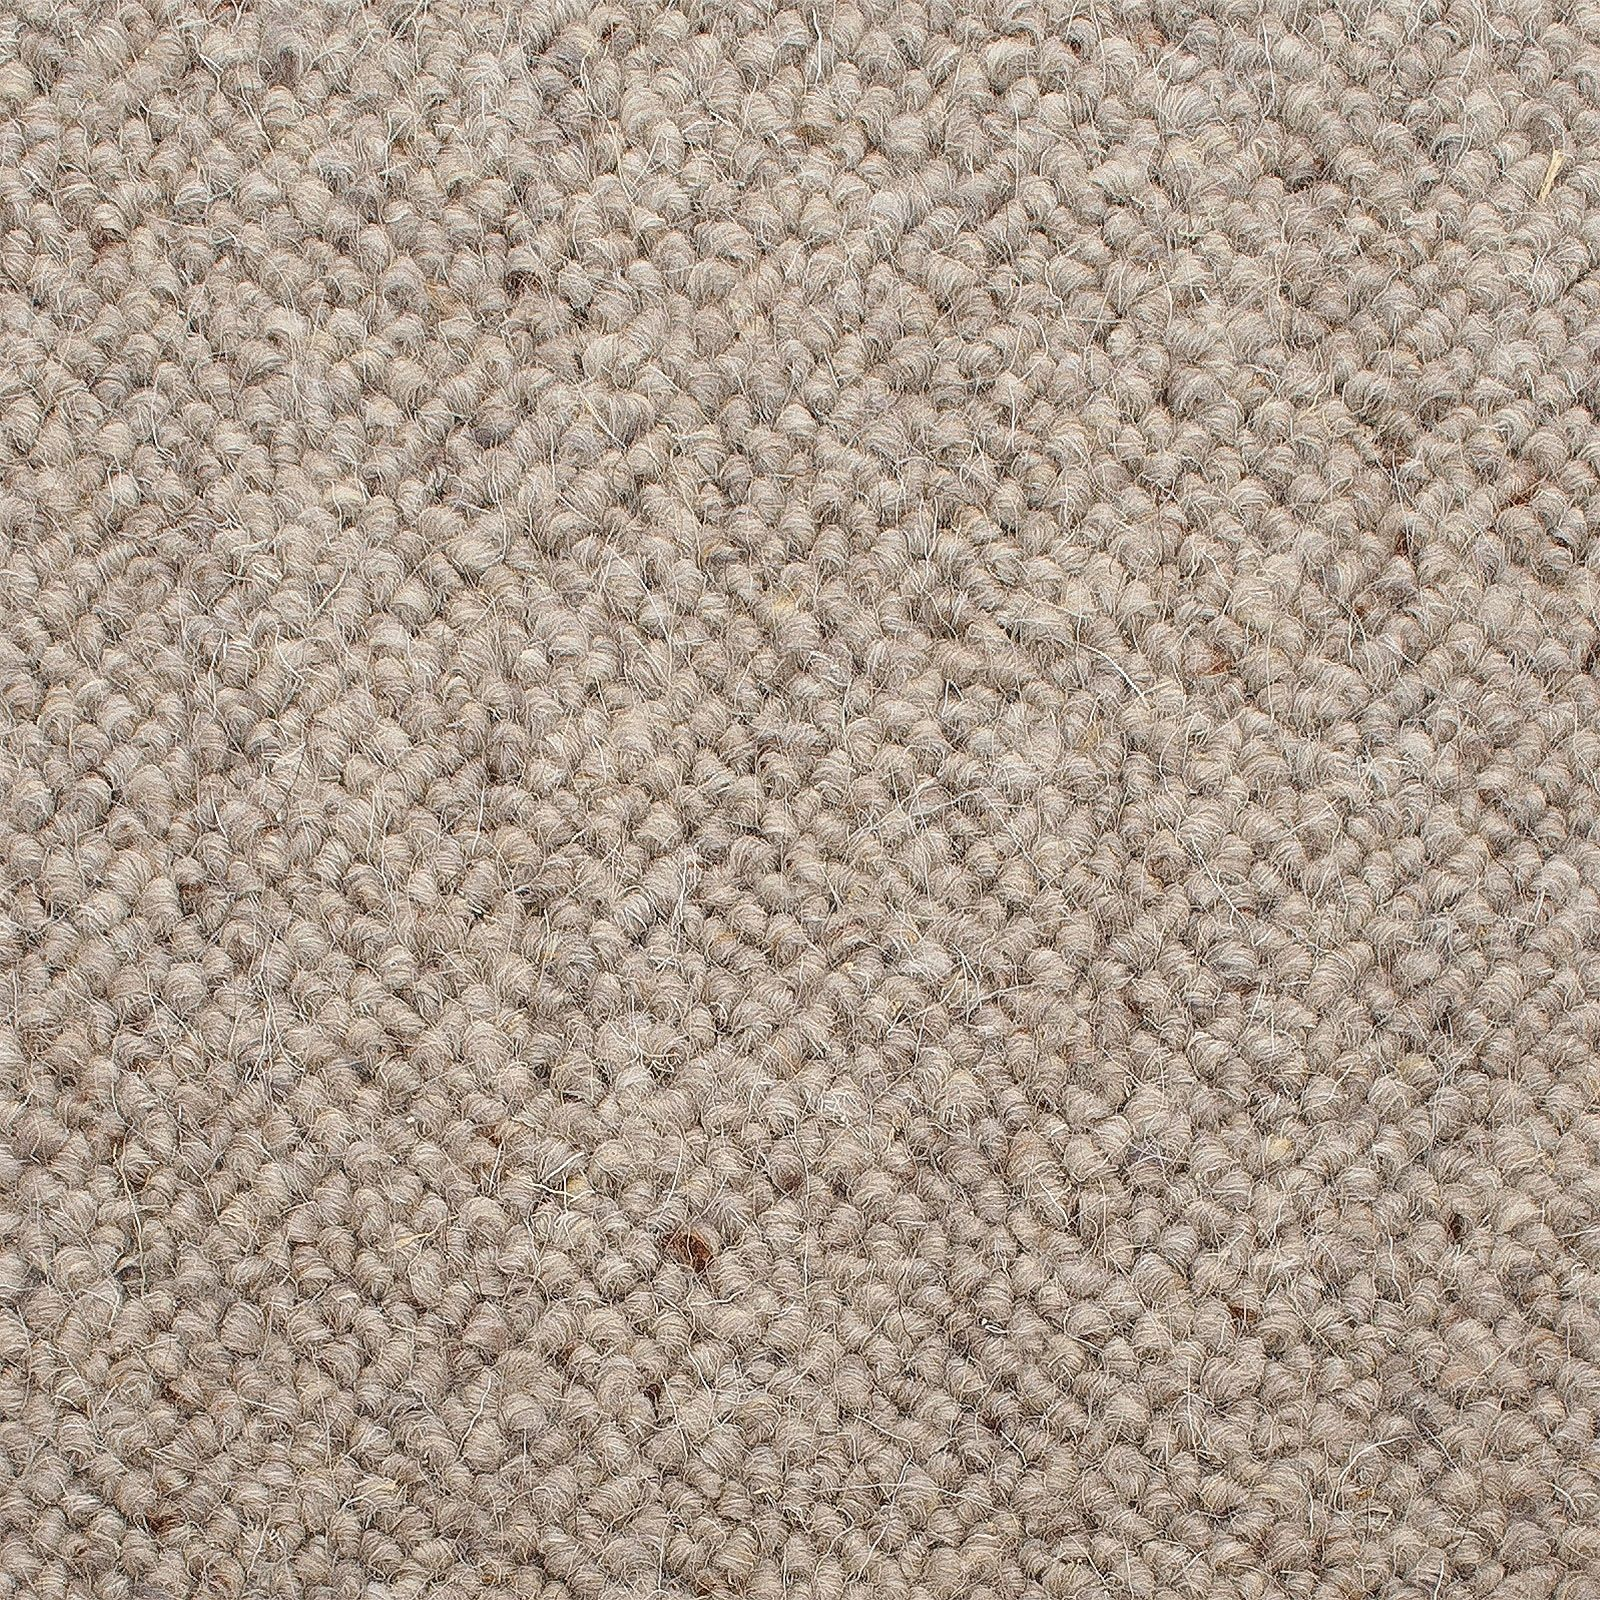 Corsa Berber Carpet Buy 100 Wool Berber Carpets Online Carpet Cleaning Recipes Deep Carpet Cleaning Carpet Cleaning Pet Stains